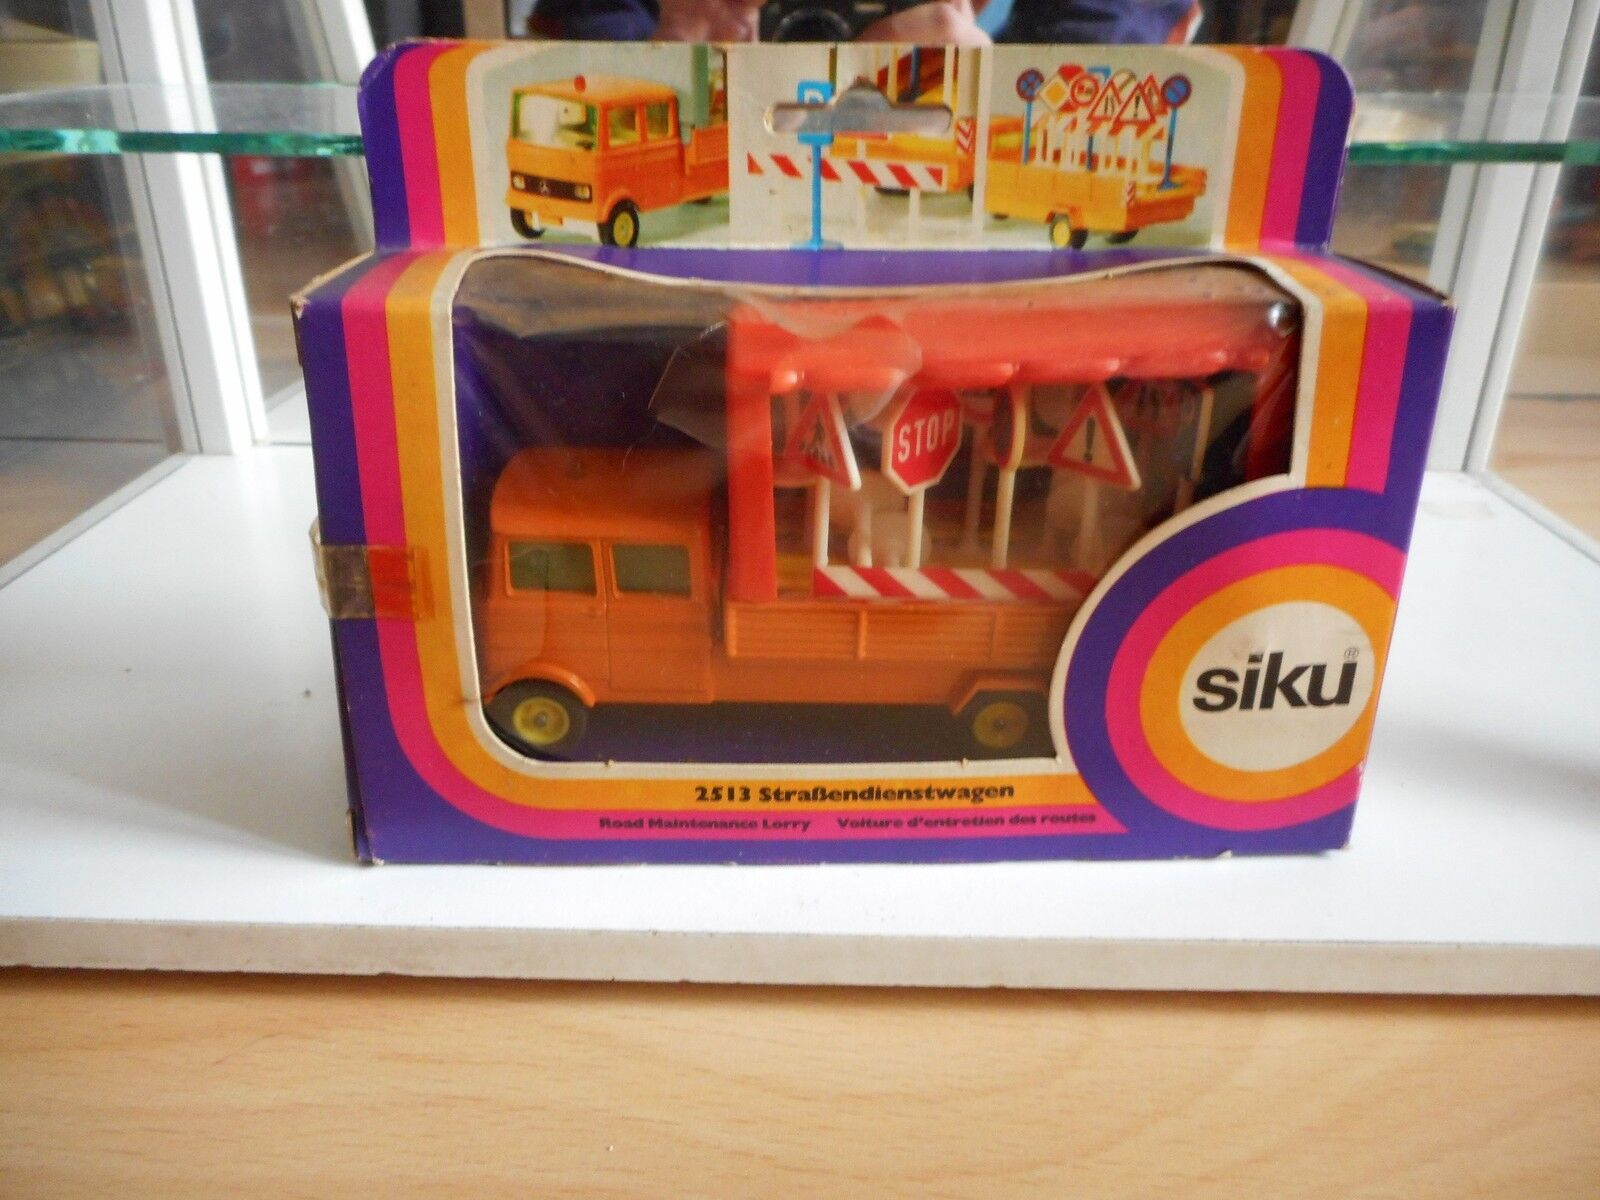 Siku Mercedes Road Maintance lorry in Orange in Box (Siku nr  2513)